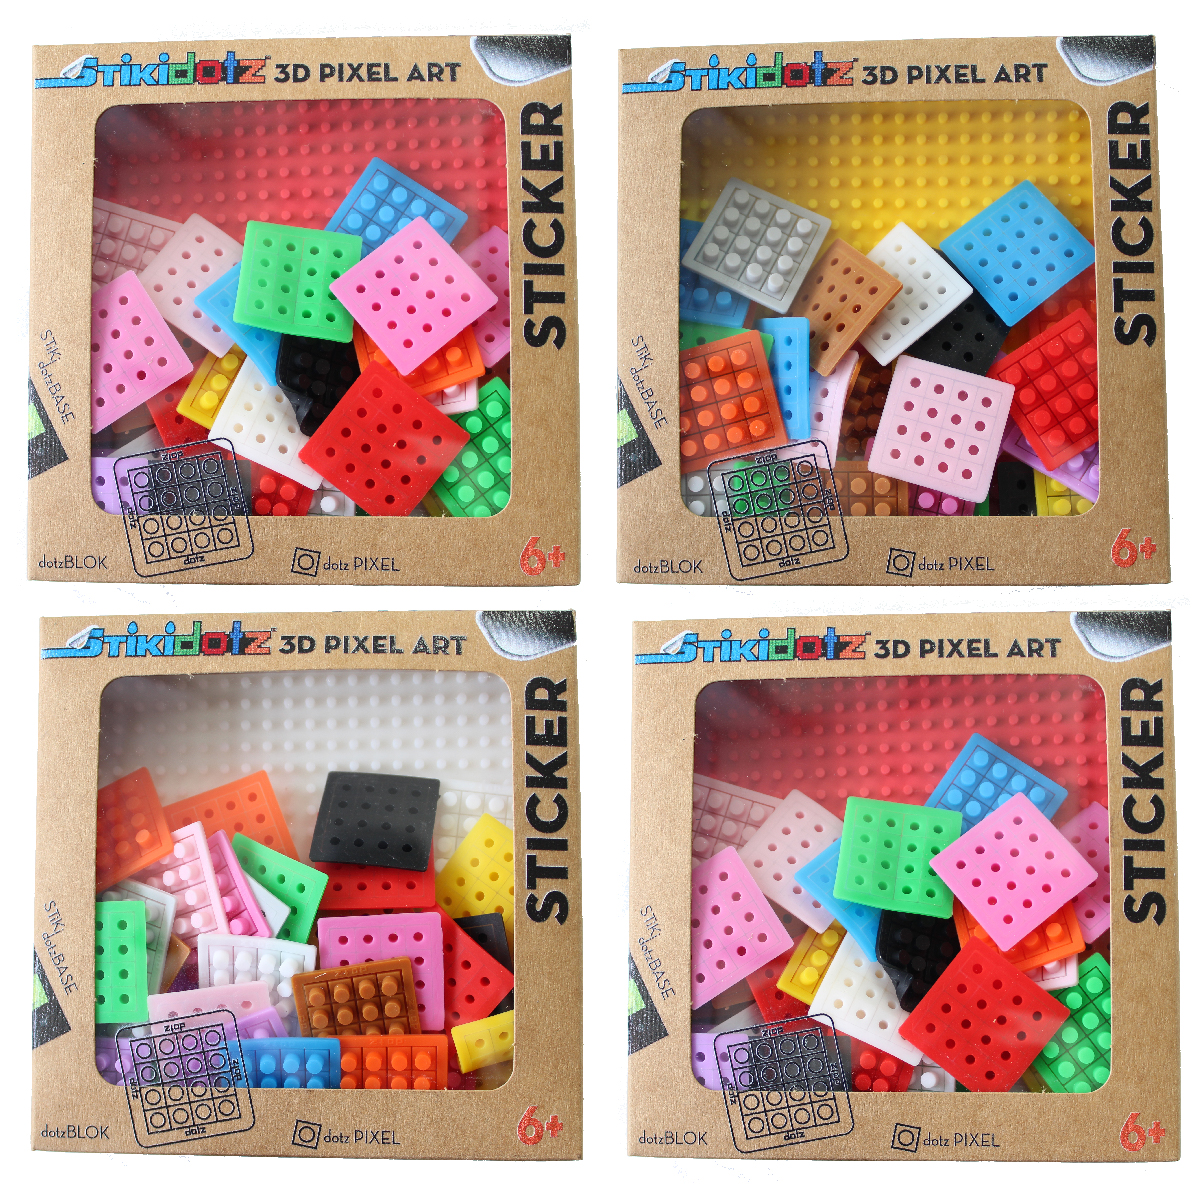 """Starter Pack   8 Color Choices Available  Create your own STiKidotz 3D Pixel Art Sticker.  Choose your color of 2 Medium STiKidotz Bases (20 x 20 pixels / 3.5"""" x 3.5""""), comes with 36 Multicolor dotzBLOKs (576 dotzPIXELS)   MSRP $9.99     MORE INFORMATION      Available on Amazon"""